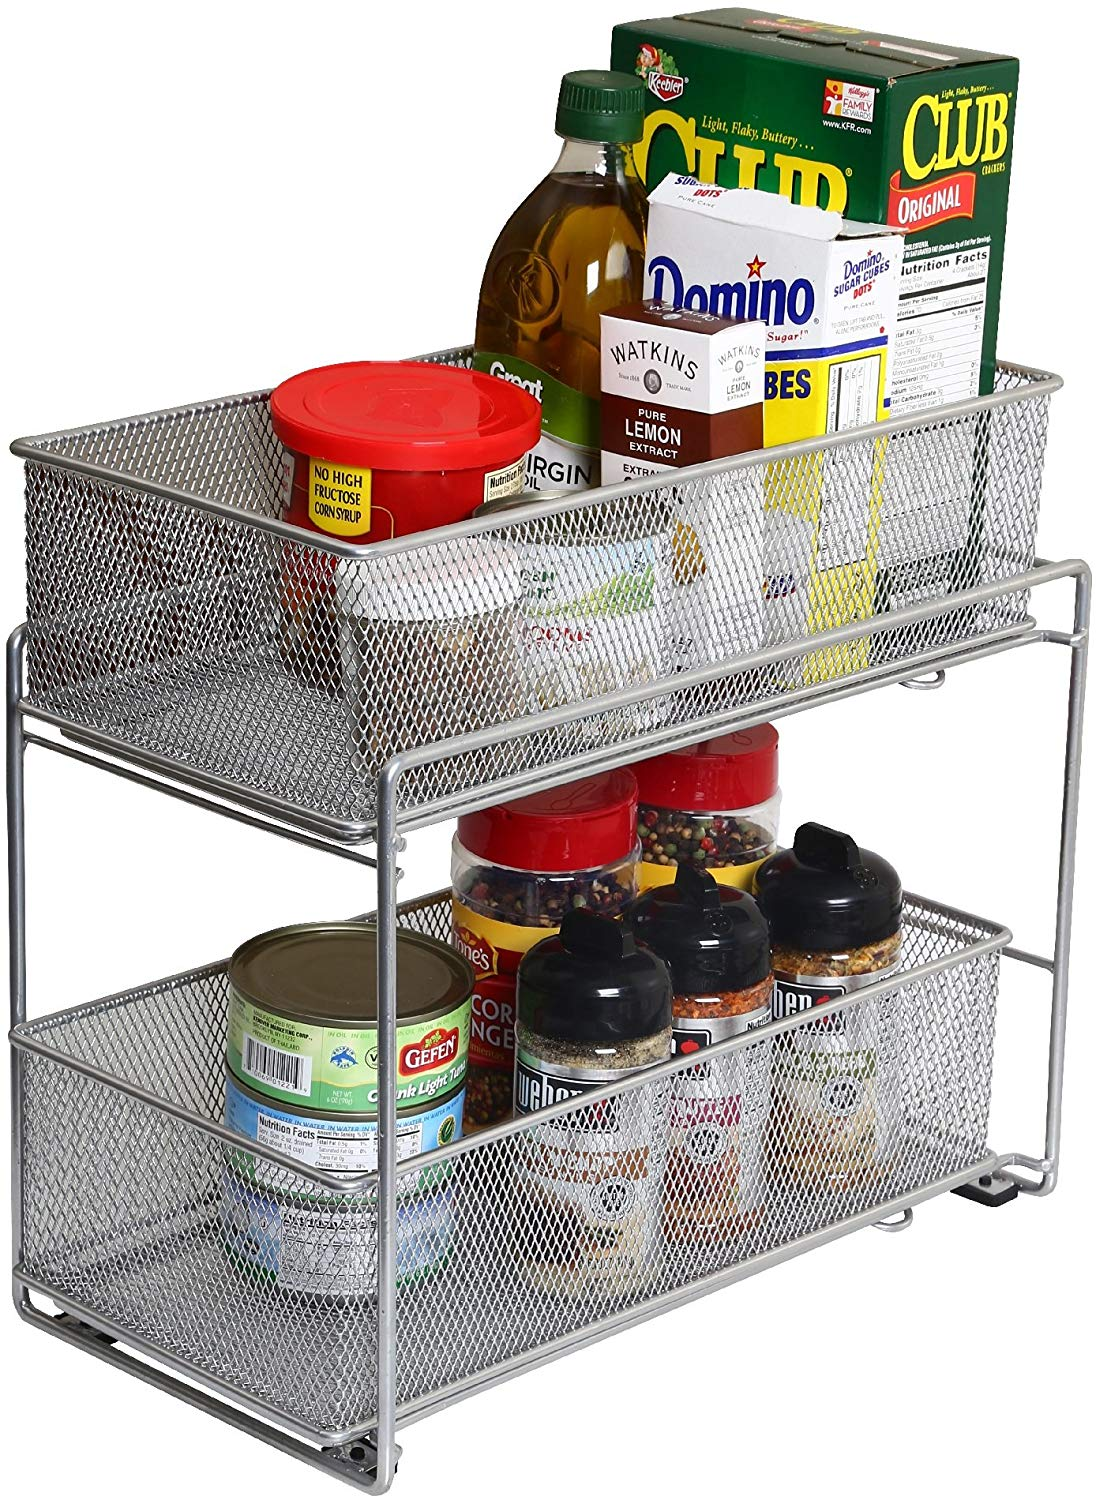 YBM Home Silver 2 Tier Mesh Sliding Spice and Sauces Basket Cabinet Organizer Drawer 2304